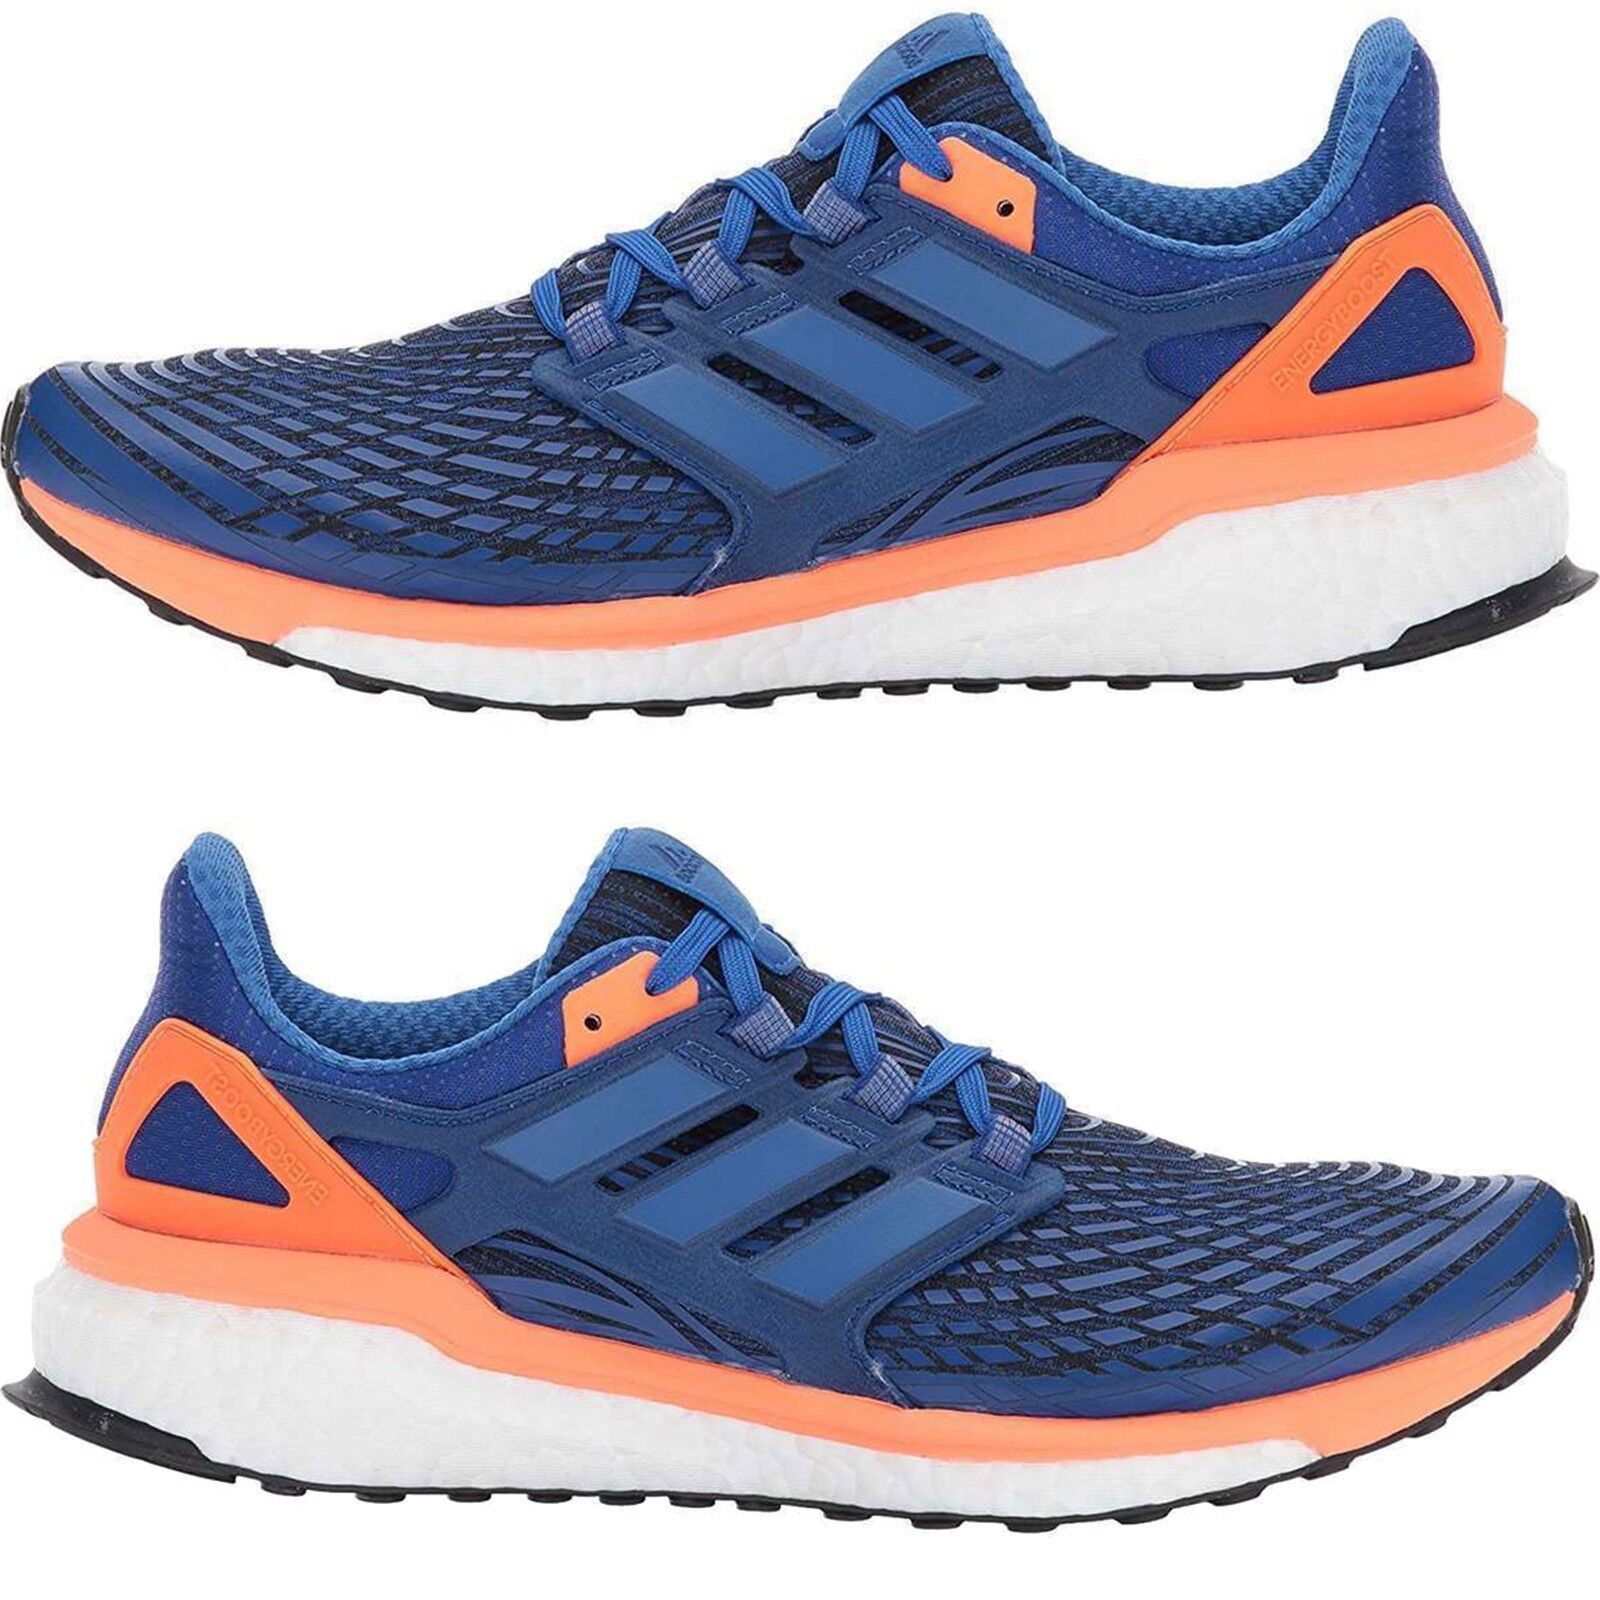 66ea72039f4597 Adidas Men's Energy Boost STRETCHWEB FITCOUNTER Running Training shoes  Sneakers